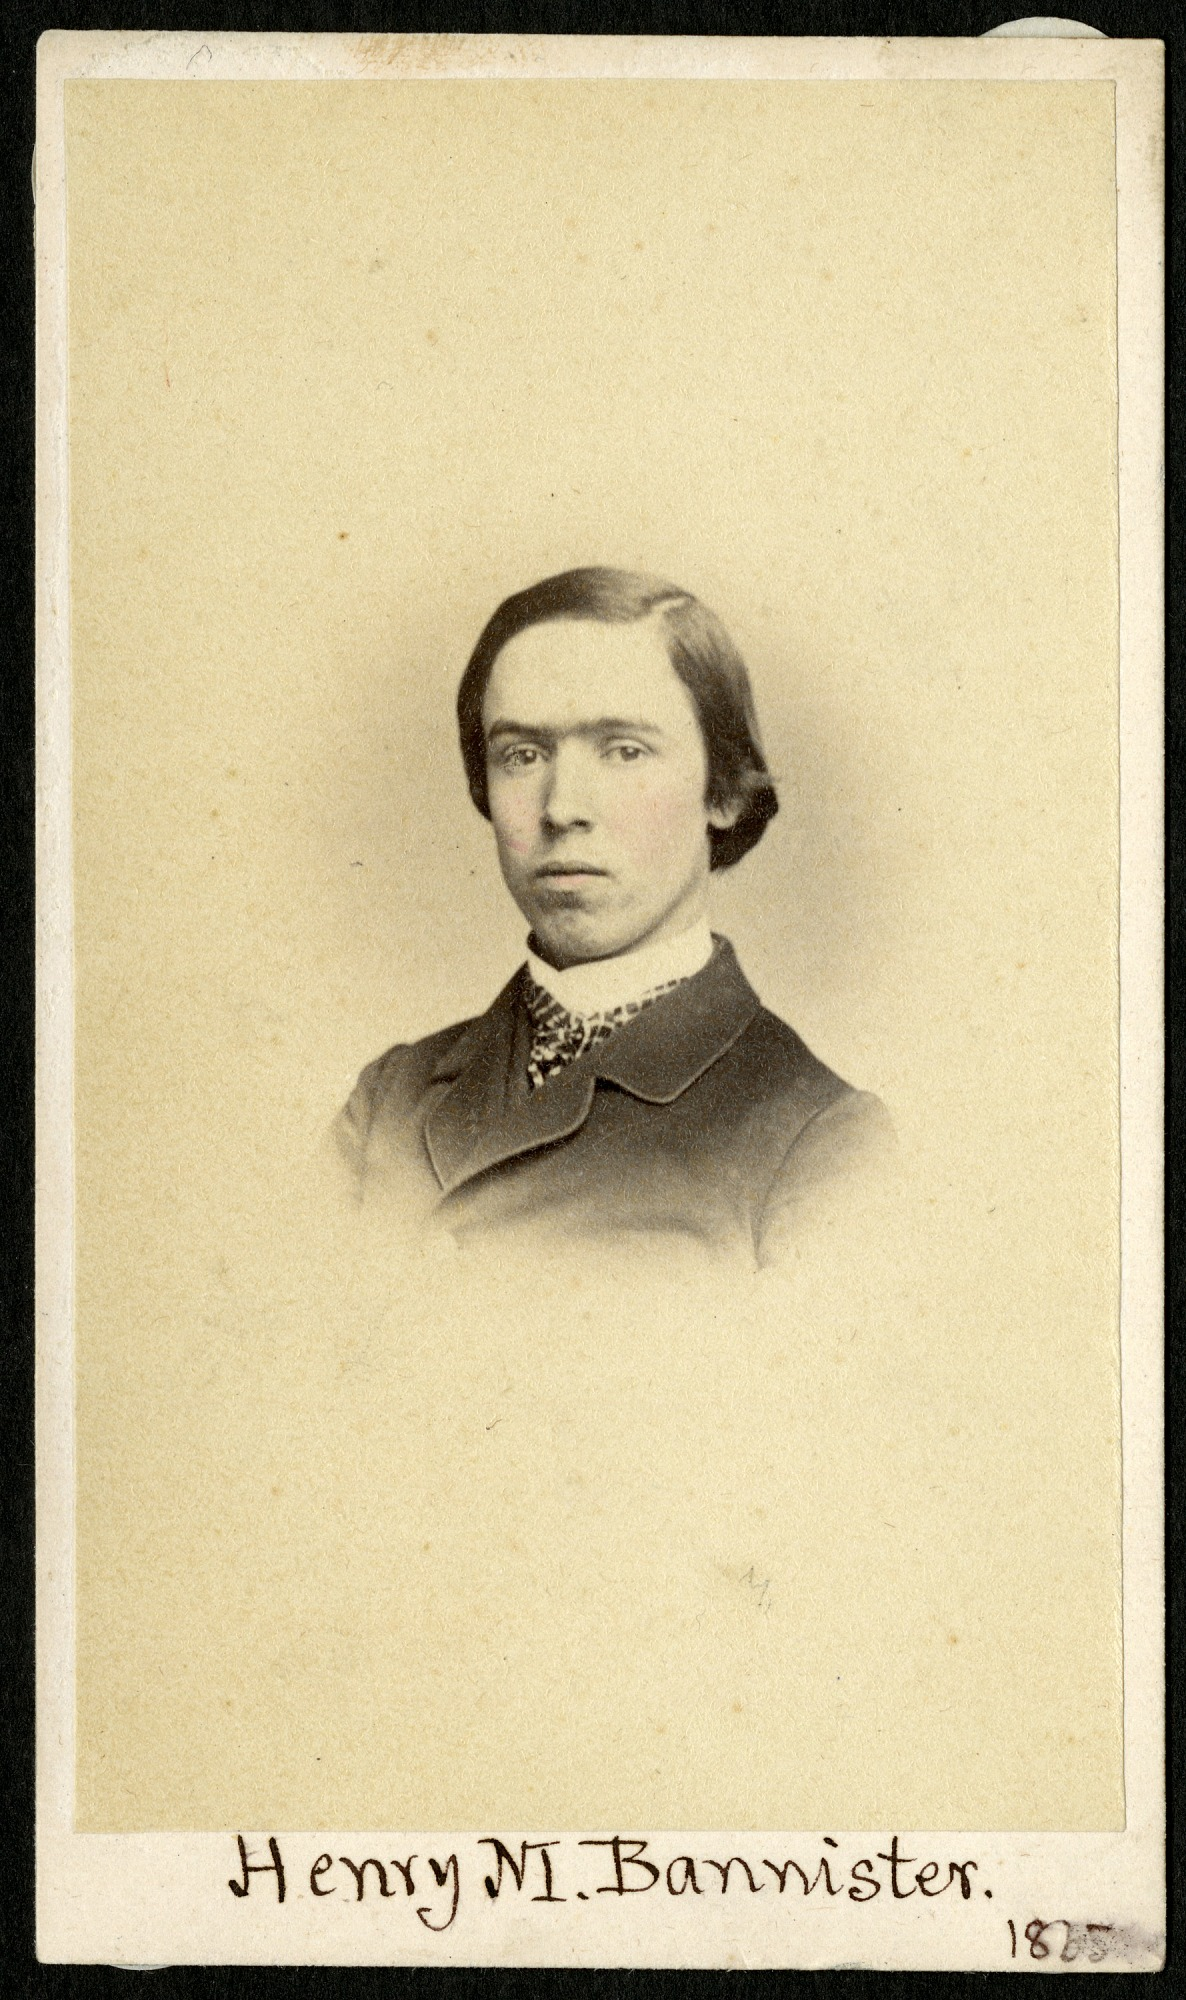 Henry Martyn Bannister (1844-1920), 1865, Smithsonian Institution Archives, SIA RU000095 [SA-276].